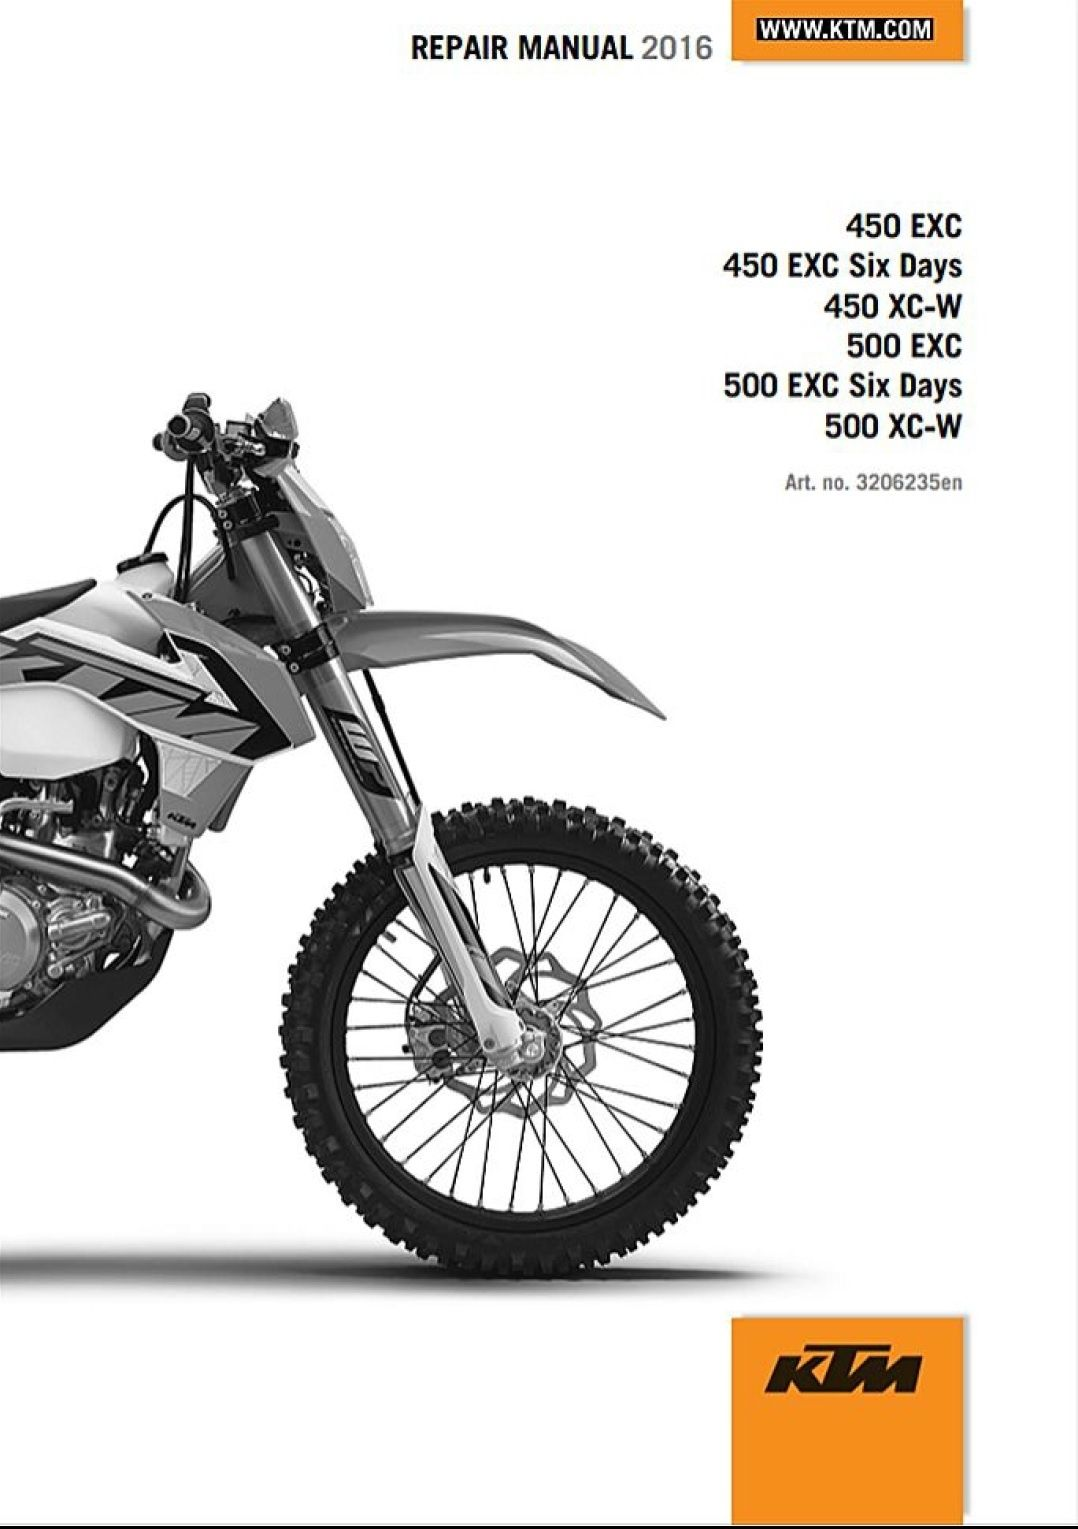 small resolution of 2016 ktm 450 500 exc xc w 6days service repair manual